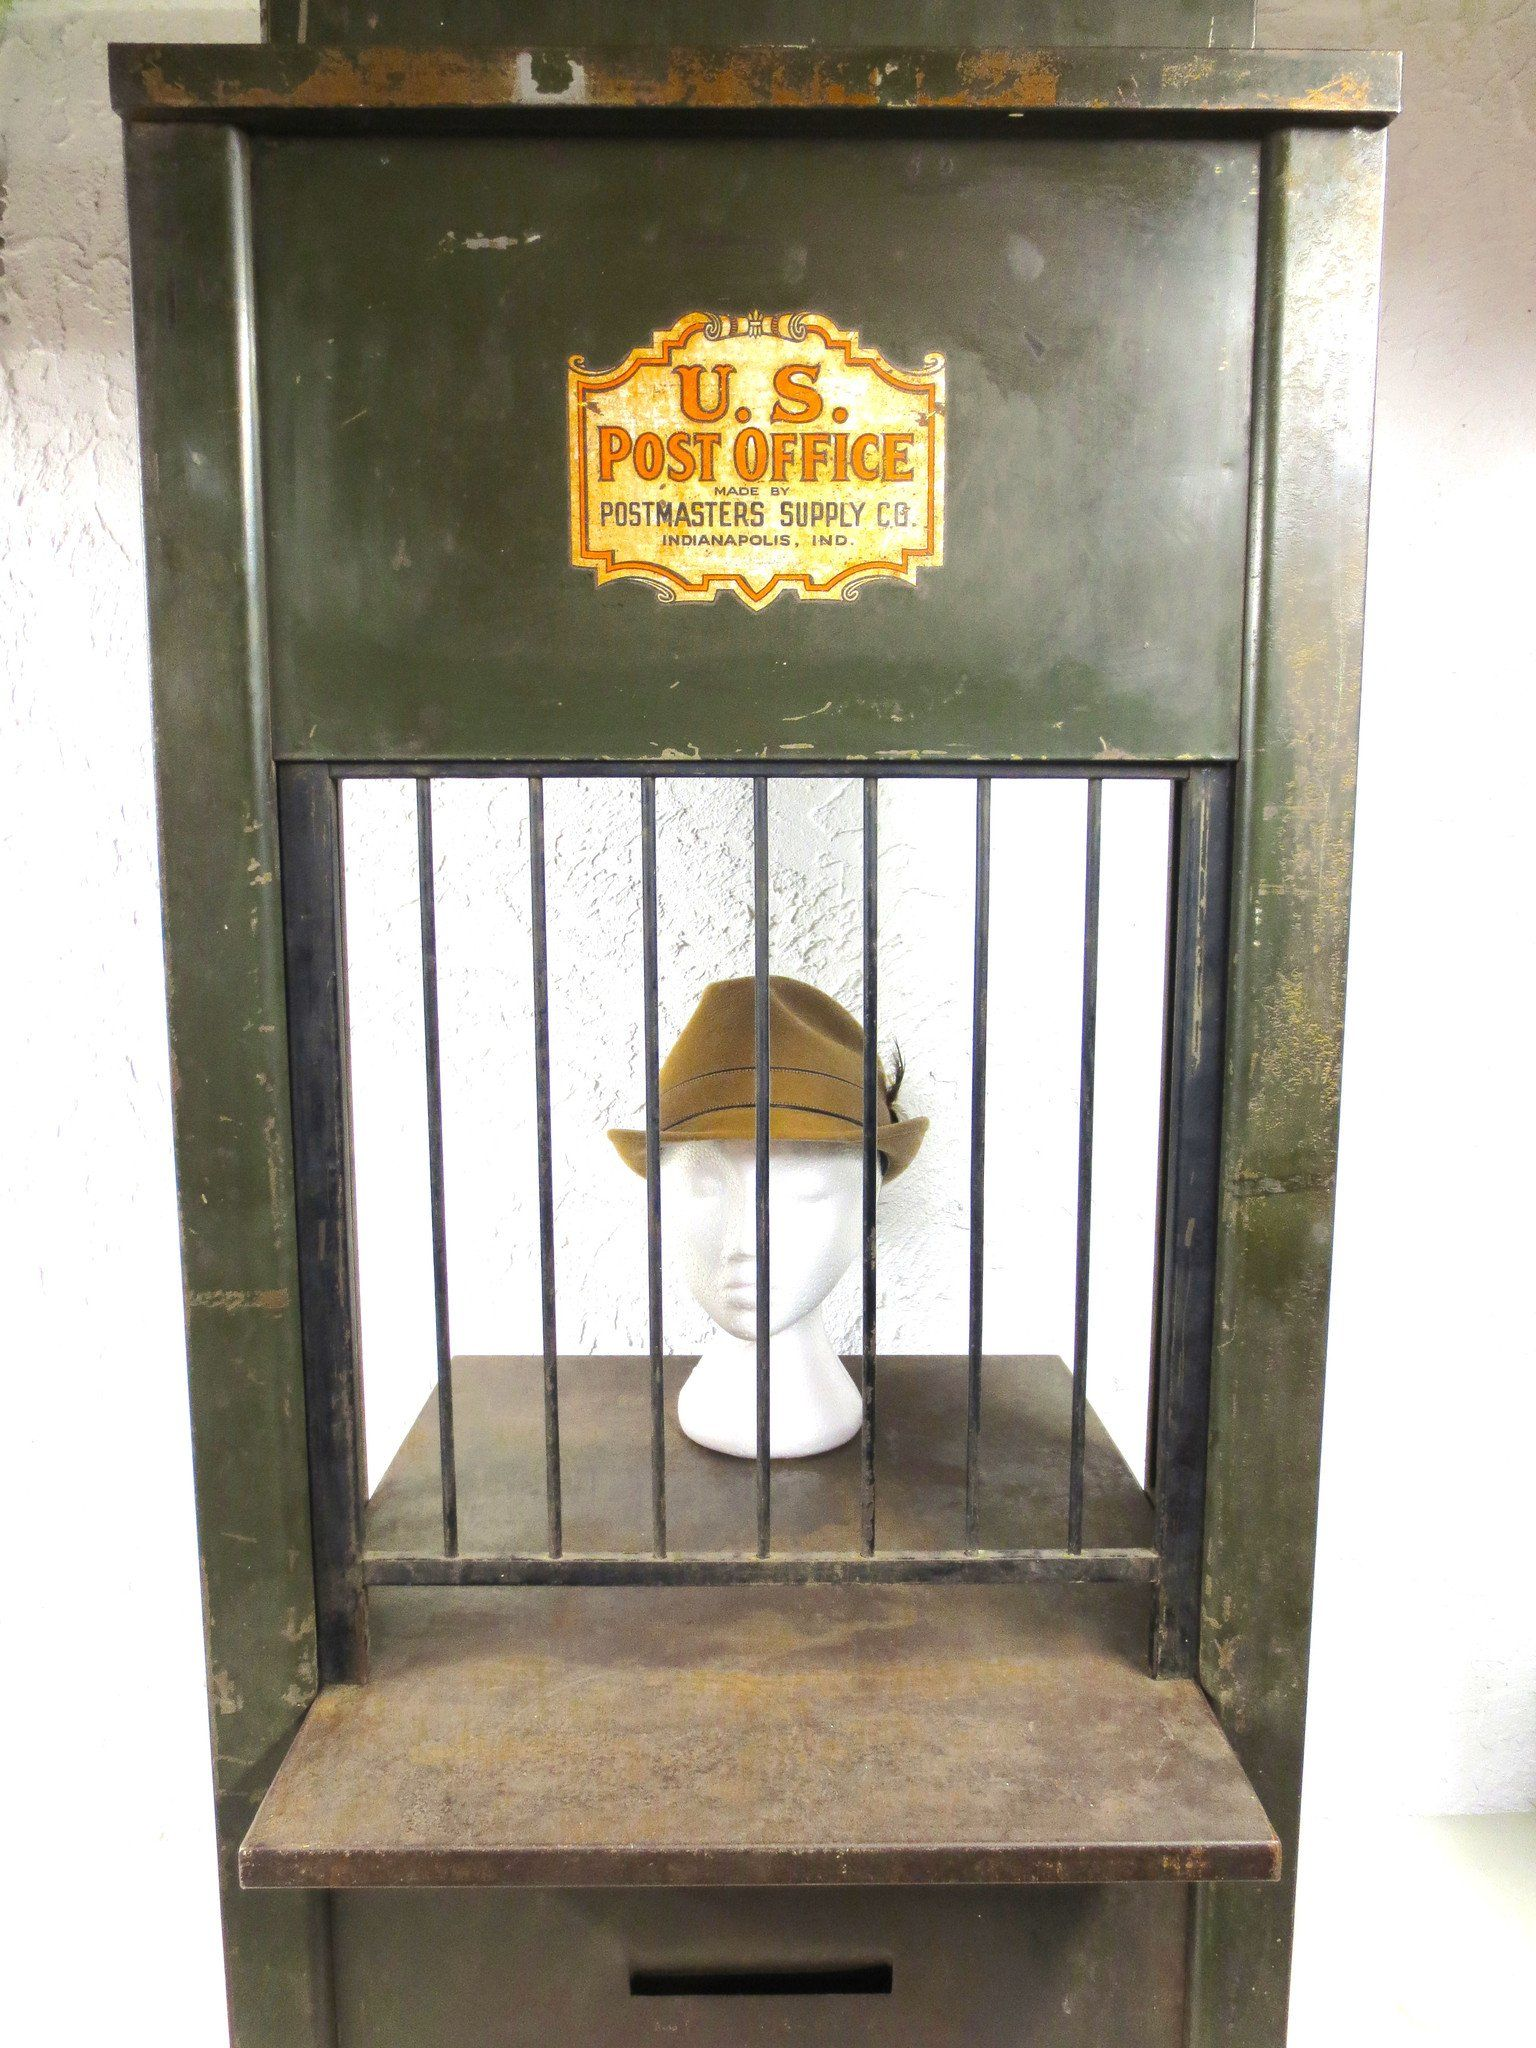 Antique US Post Office Teller Cabinet 46 , Post Office Metal Cabinet, BuiltIn W is part of Metal cabinet Posts - Rare, all original, complete, no broken parts  Measures46  high, 21  wide and 23  deep  Weighs 57 pounds  Original dark green paint  Fully functional cage window and bars, lock, open and close mechanism  3 drawers and 6 mail slots on back  Cabinet is marked U S  Post Office Made by Postmasters Supply Co  Indianapolis,